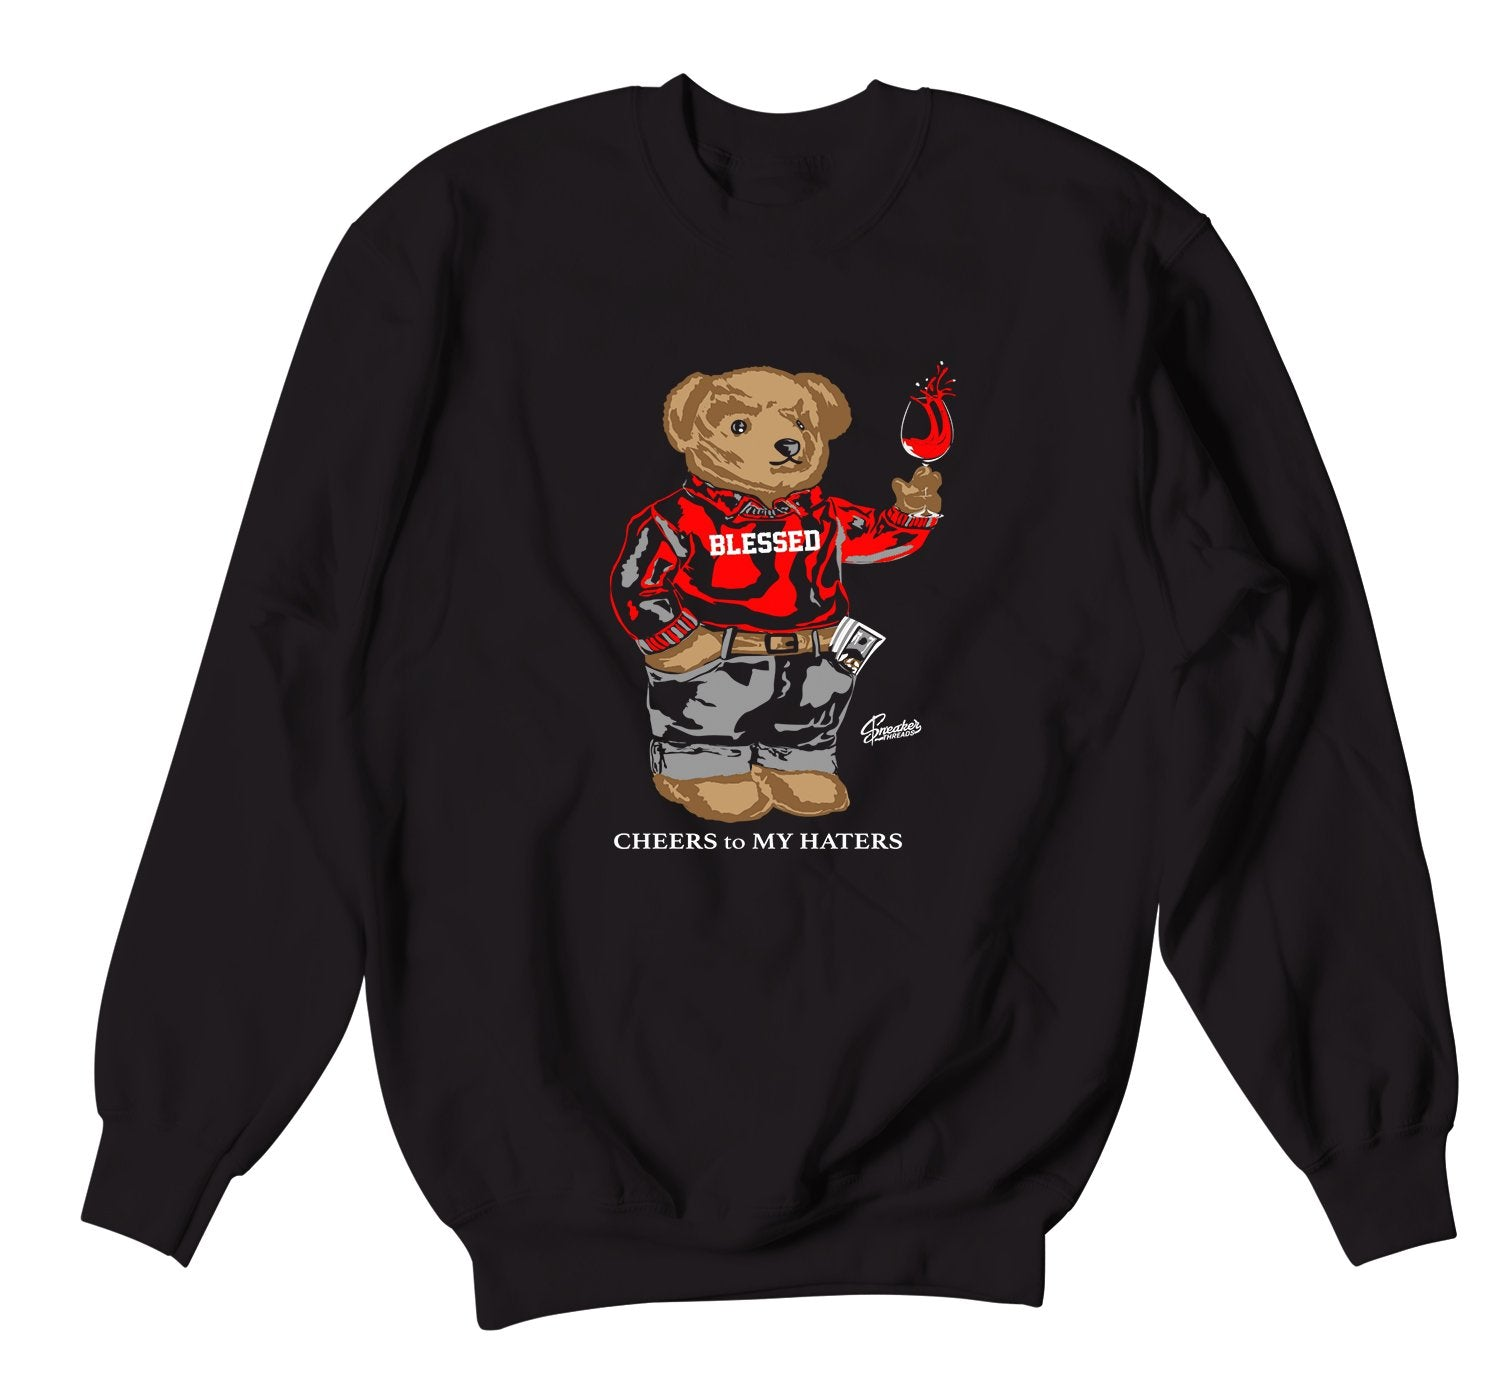 Cheers Bear Sweater to match Red Carpet 17 perfect